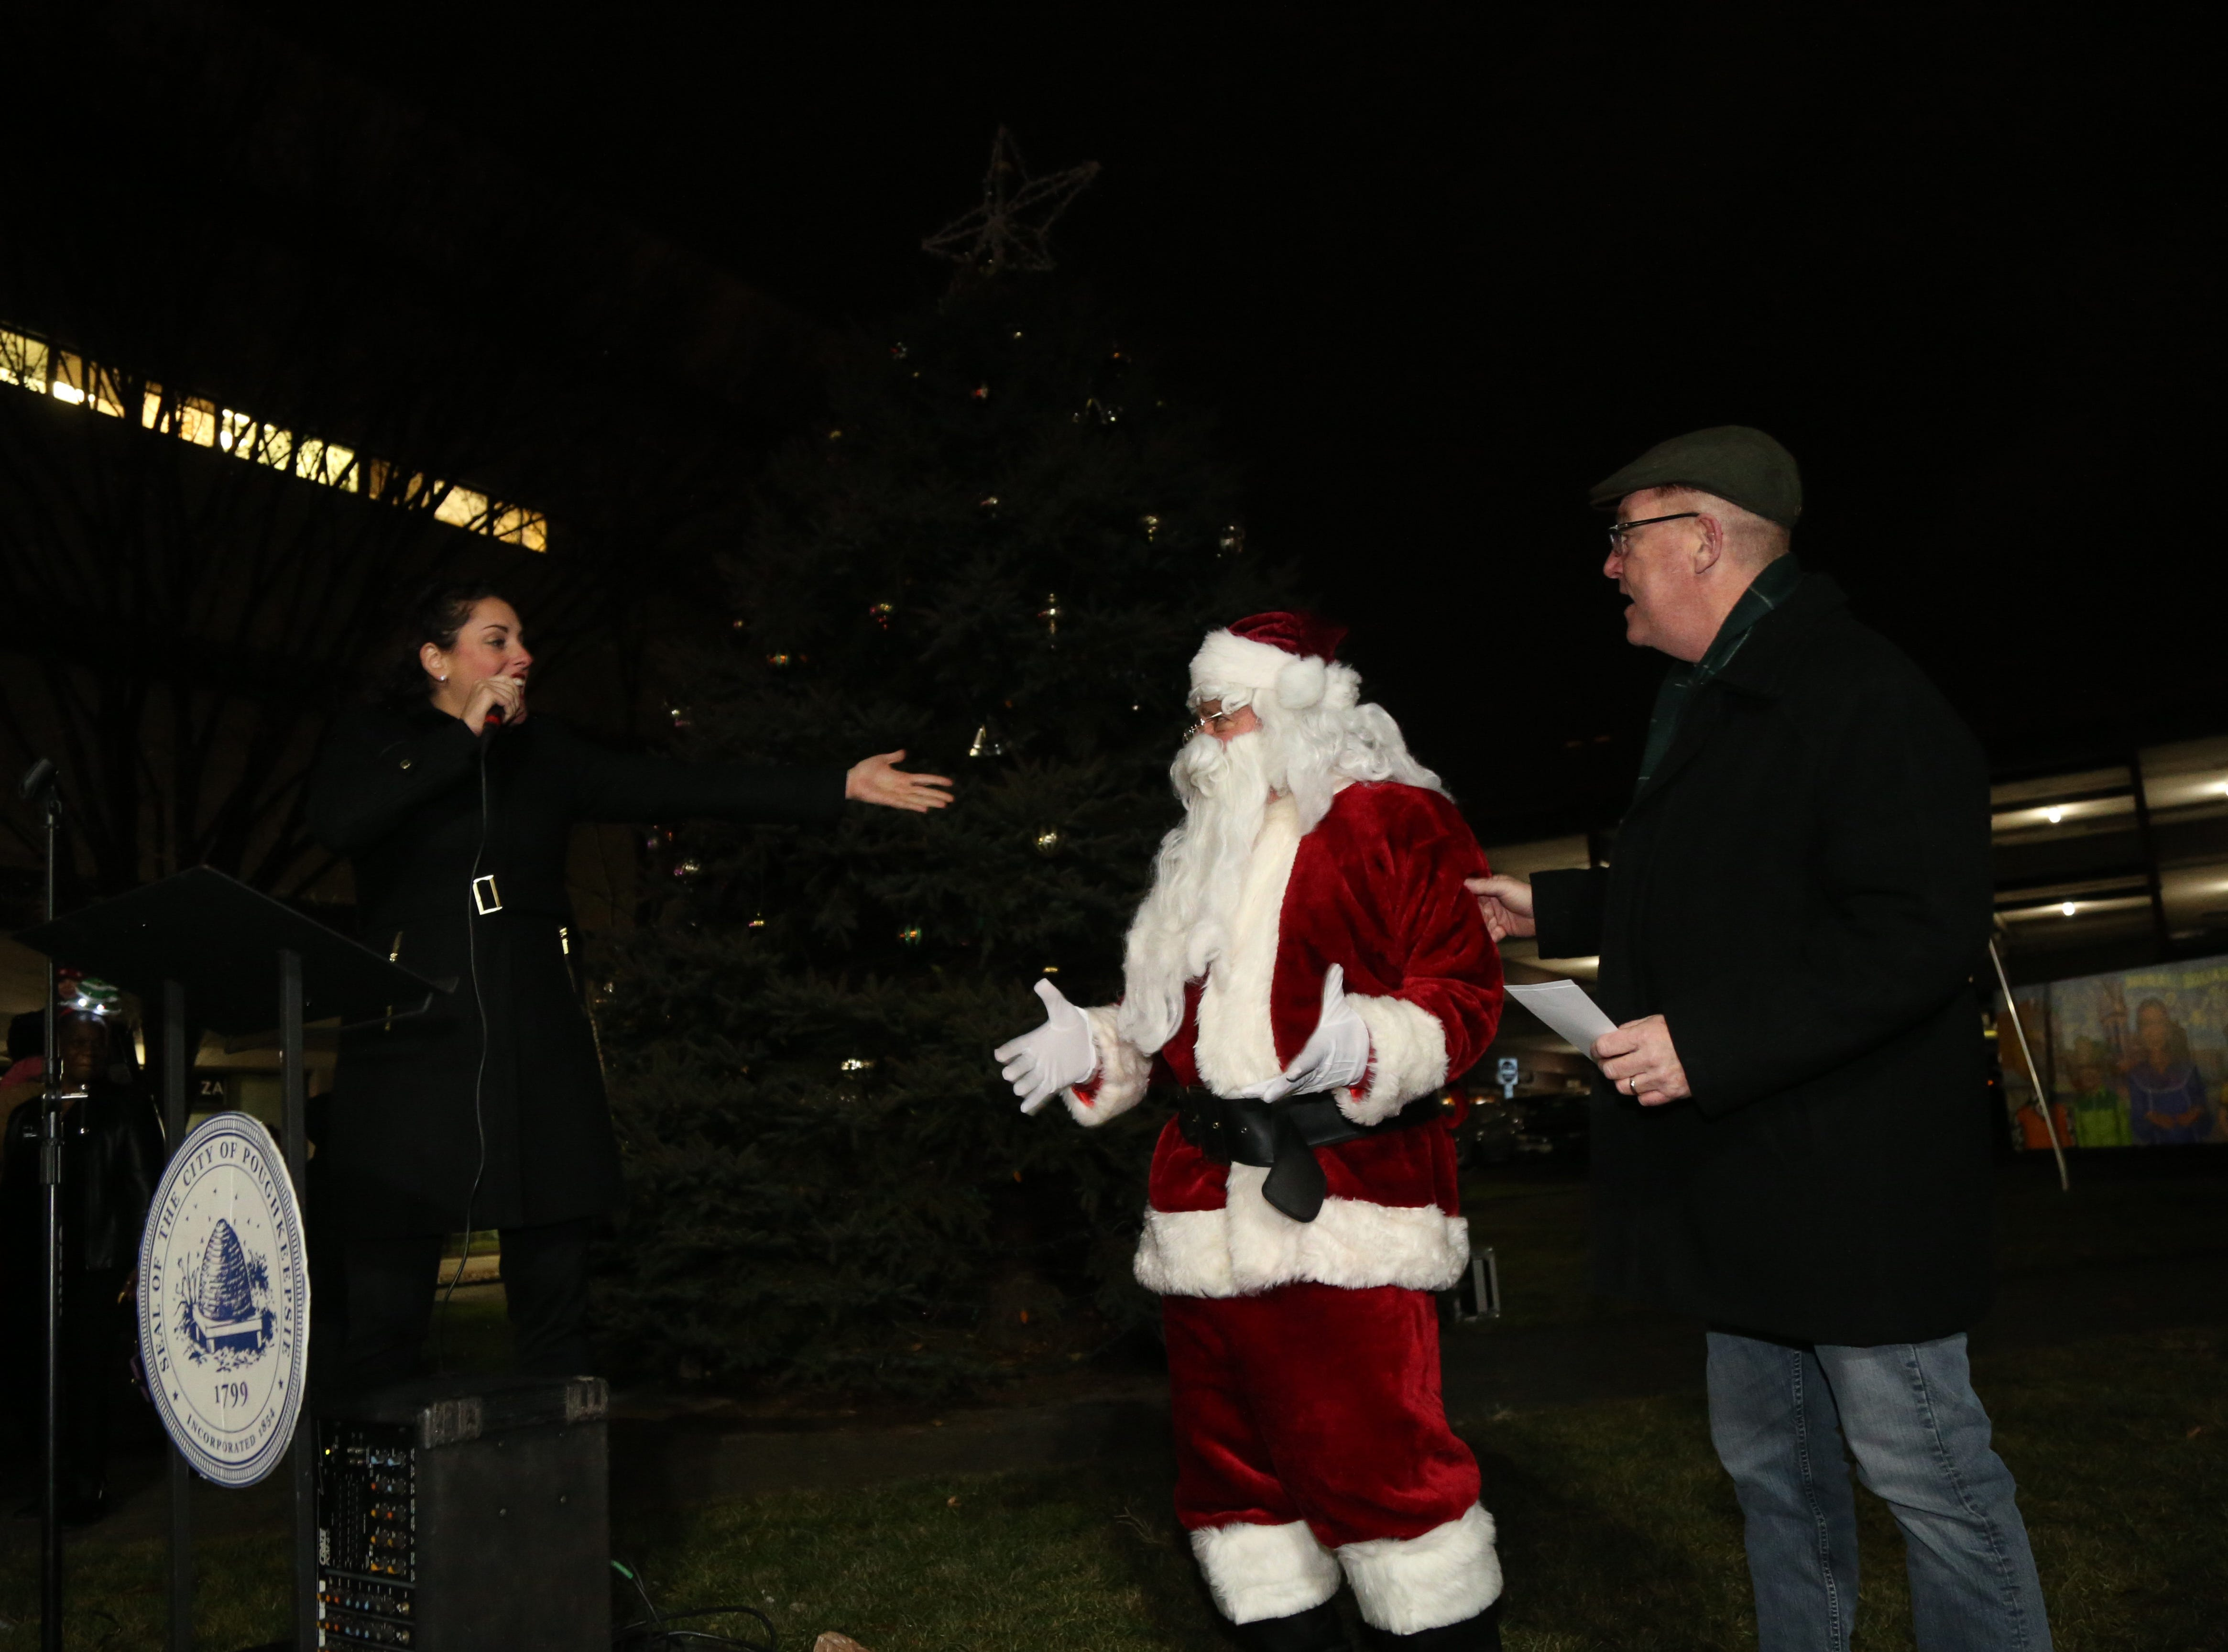 From left, Michelle Barone, Santa Claus and Mayor Rob Rolison during a tree lighting at the Celebration of Lights Parade in the City of Poughkeepsie on November 30, 2018.